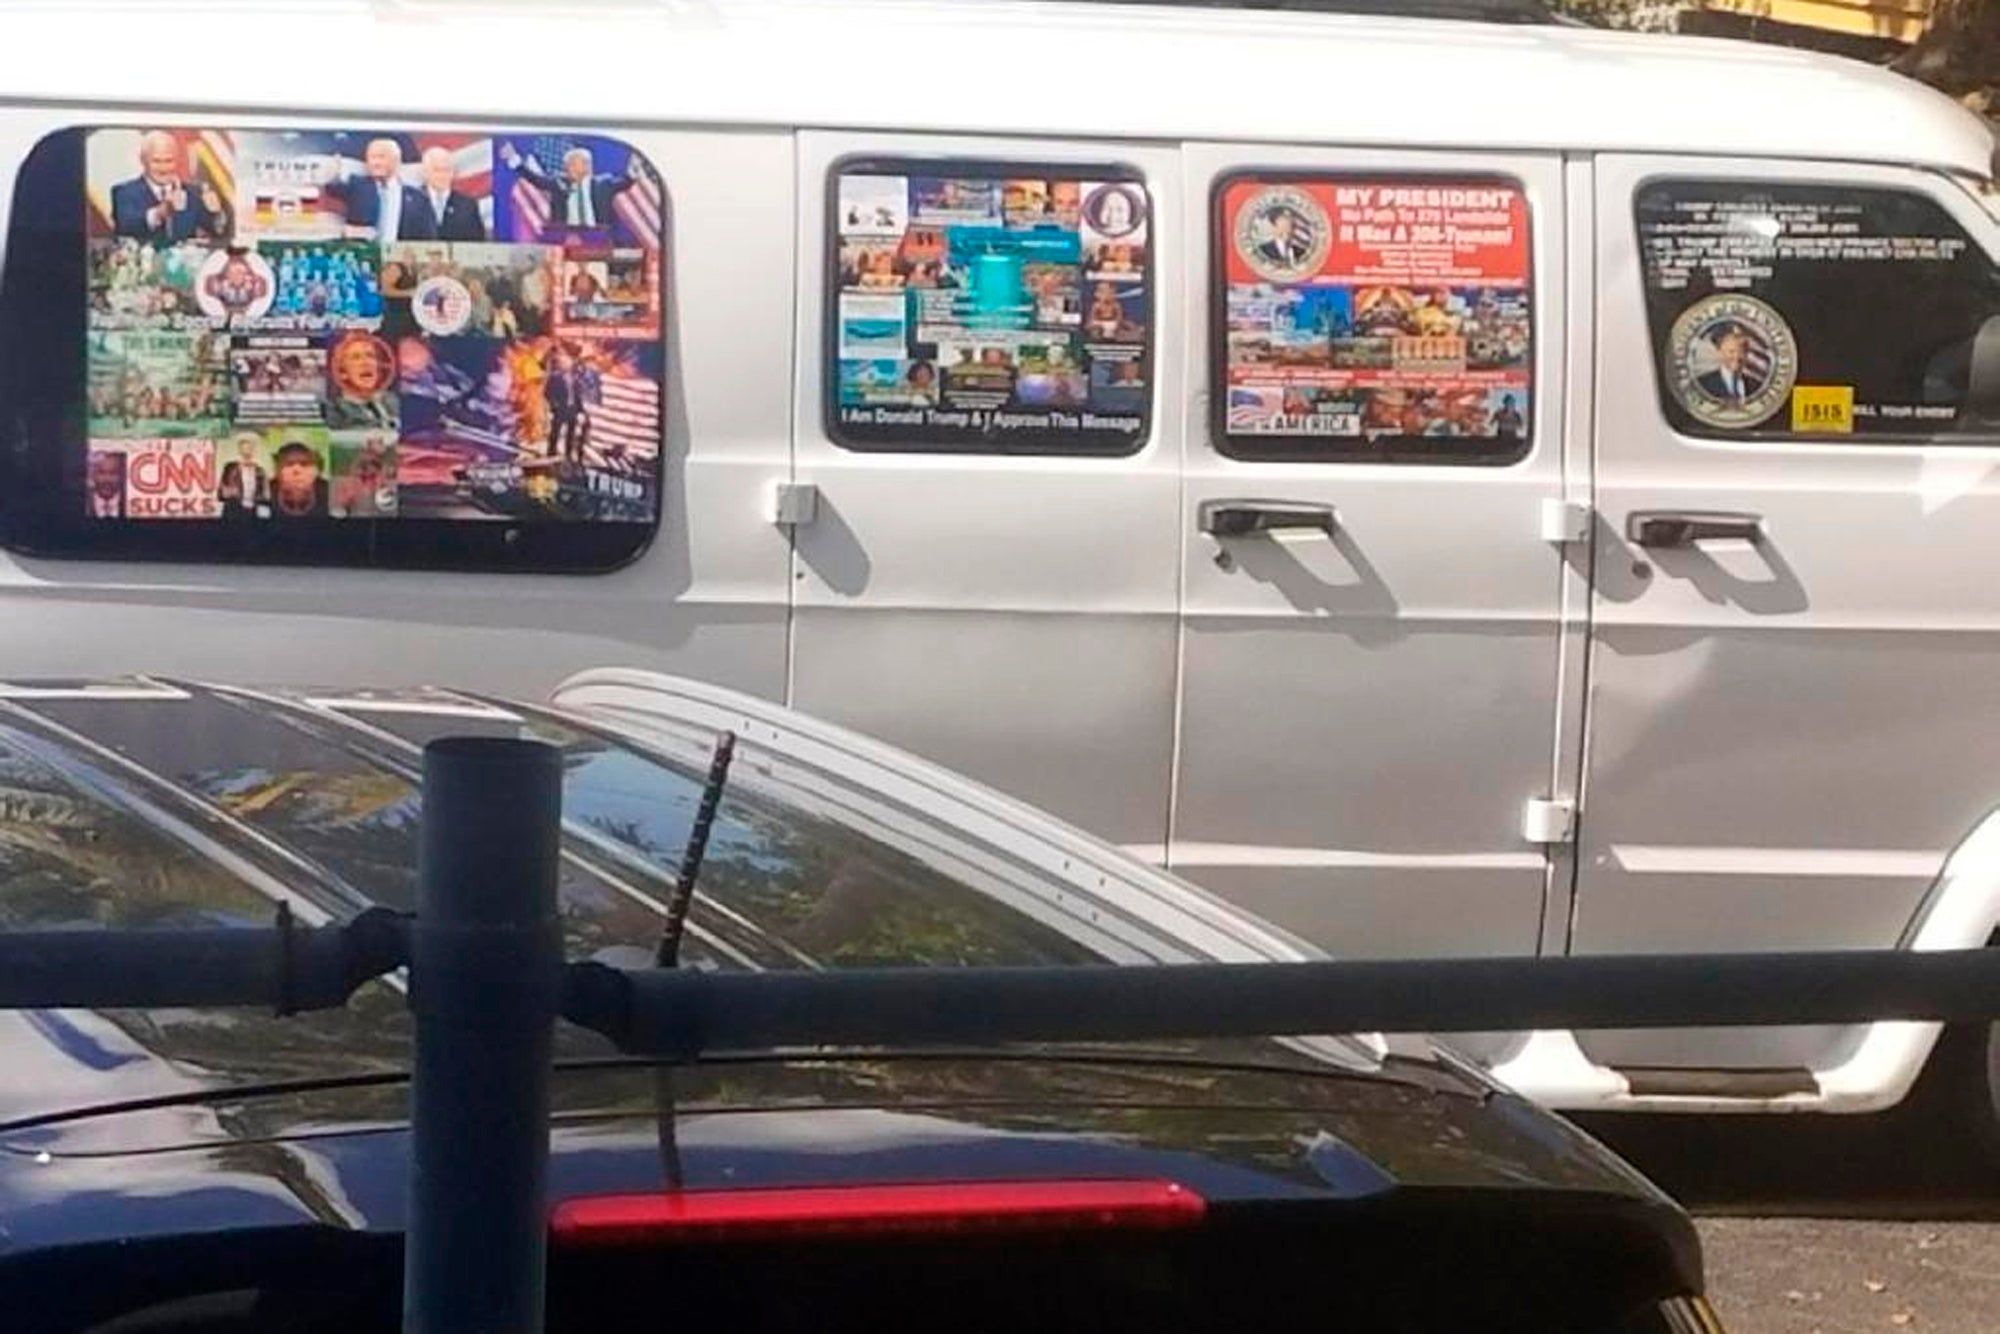 A van with windows covered with an assortment of stickers.